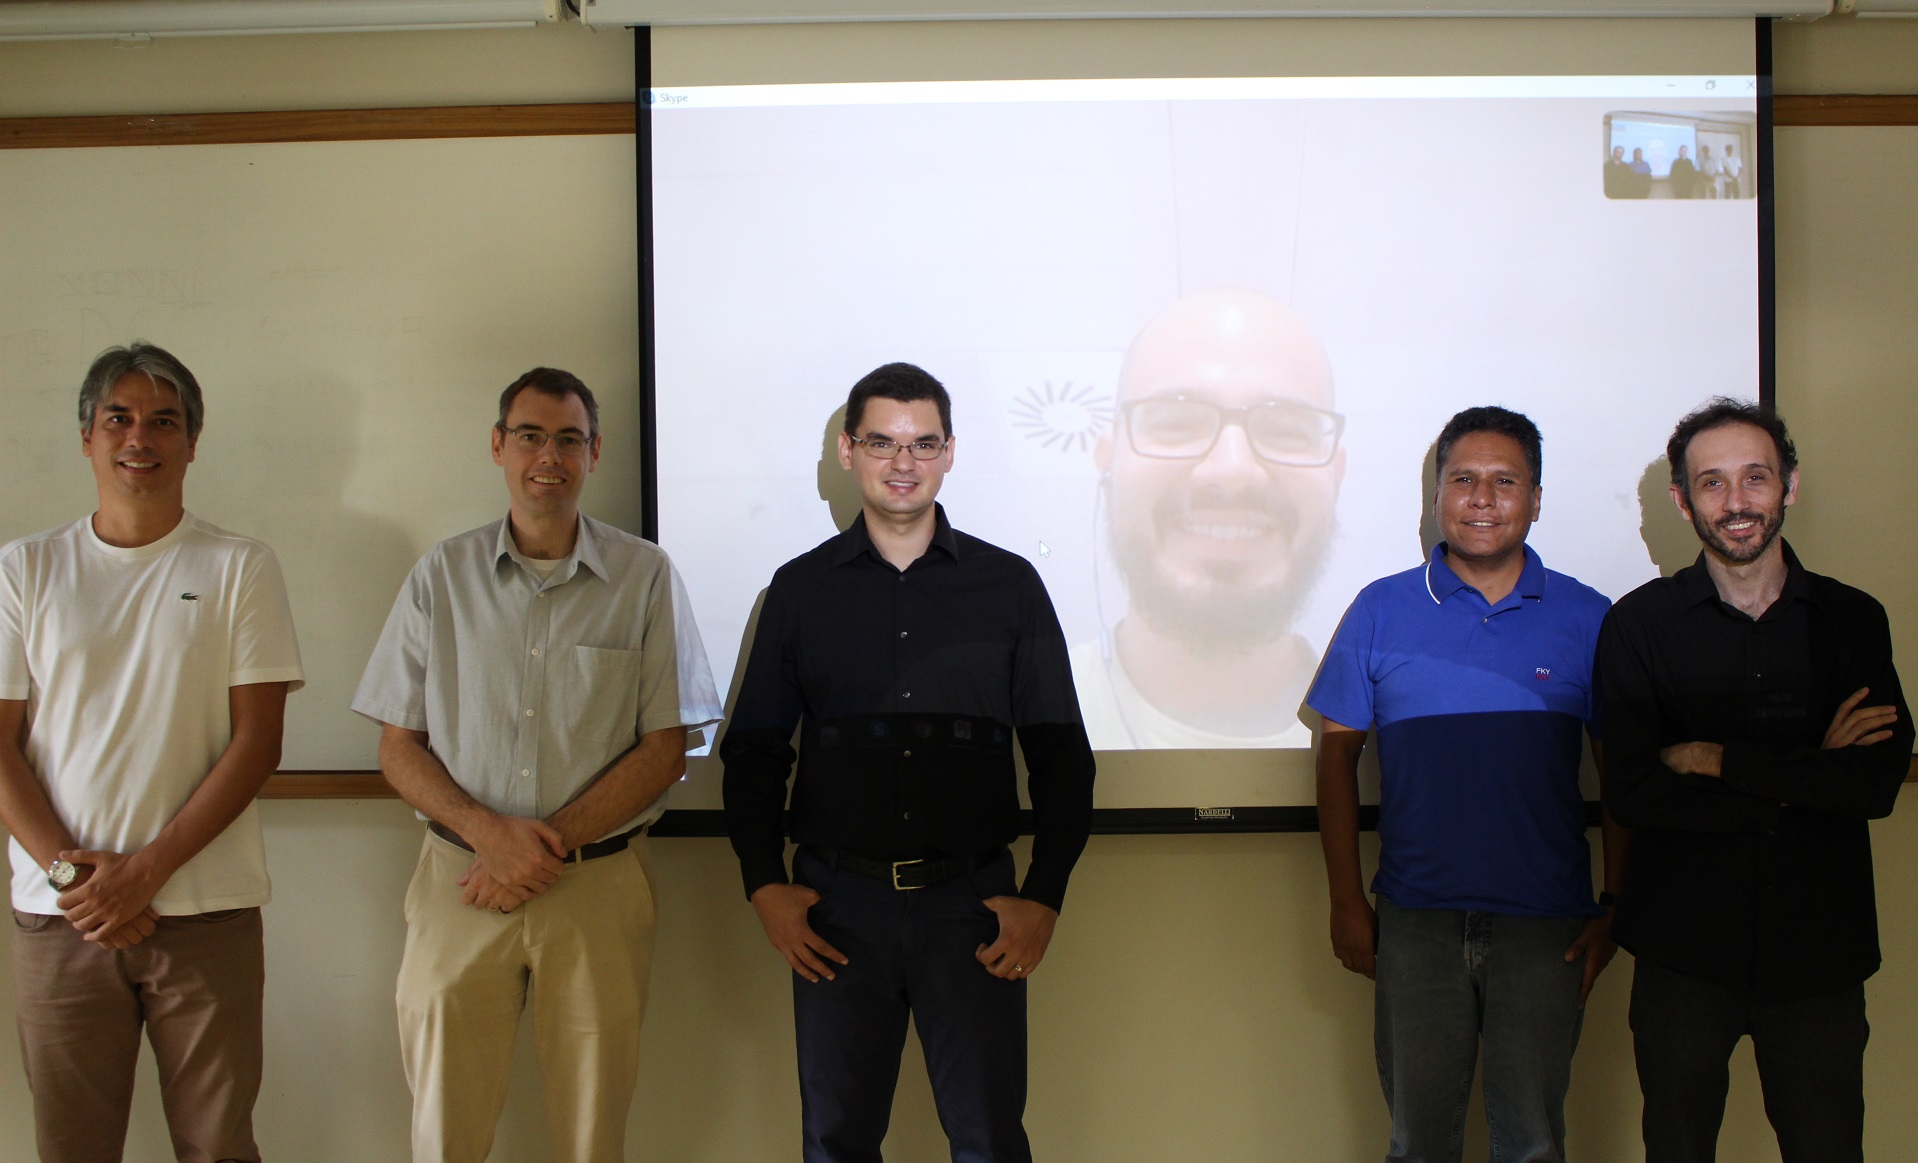 Sense researcher Raphael Prates defends his Ph.D. thesis on person re-identification